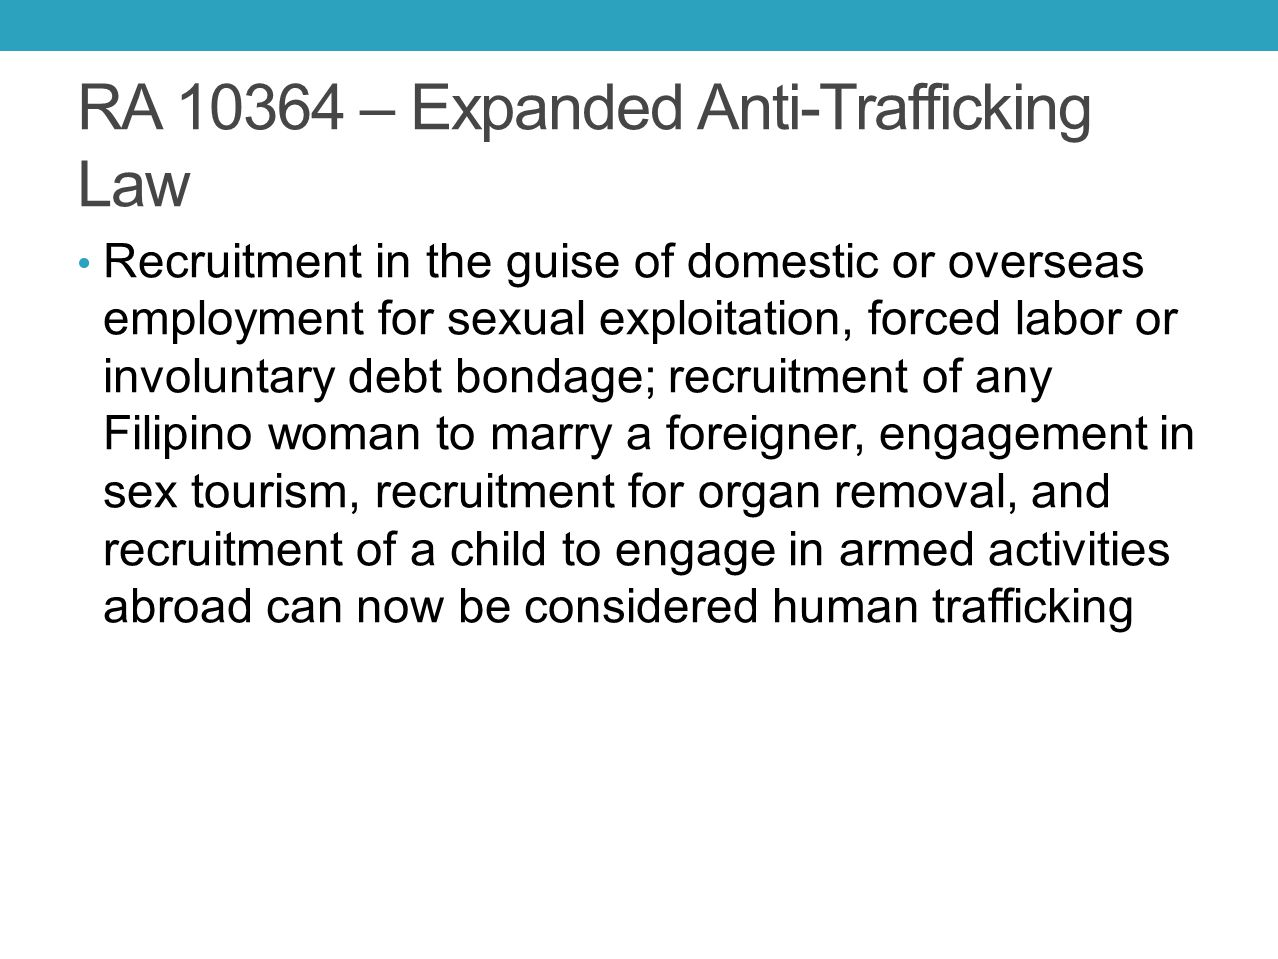 RA 10364 – Expanded Anti-Trafficking Law